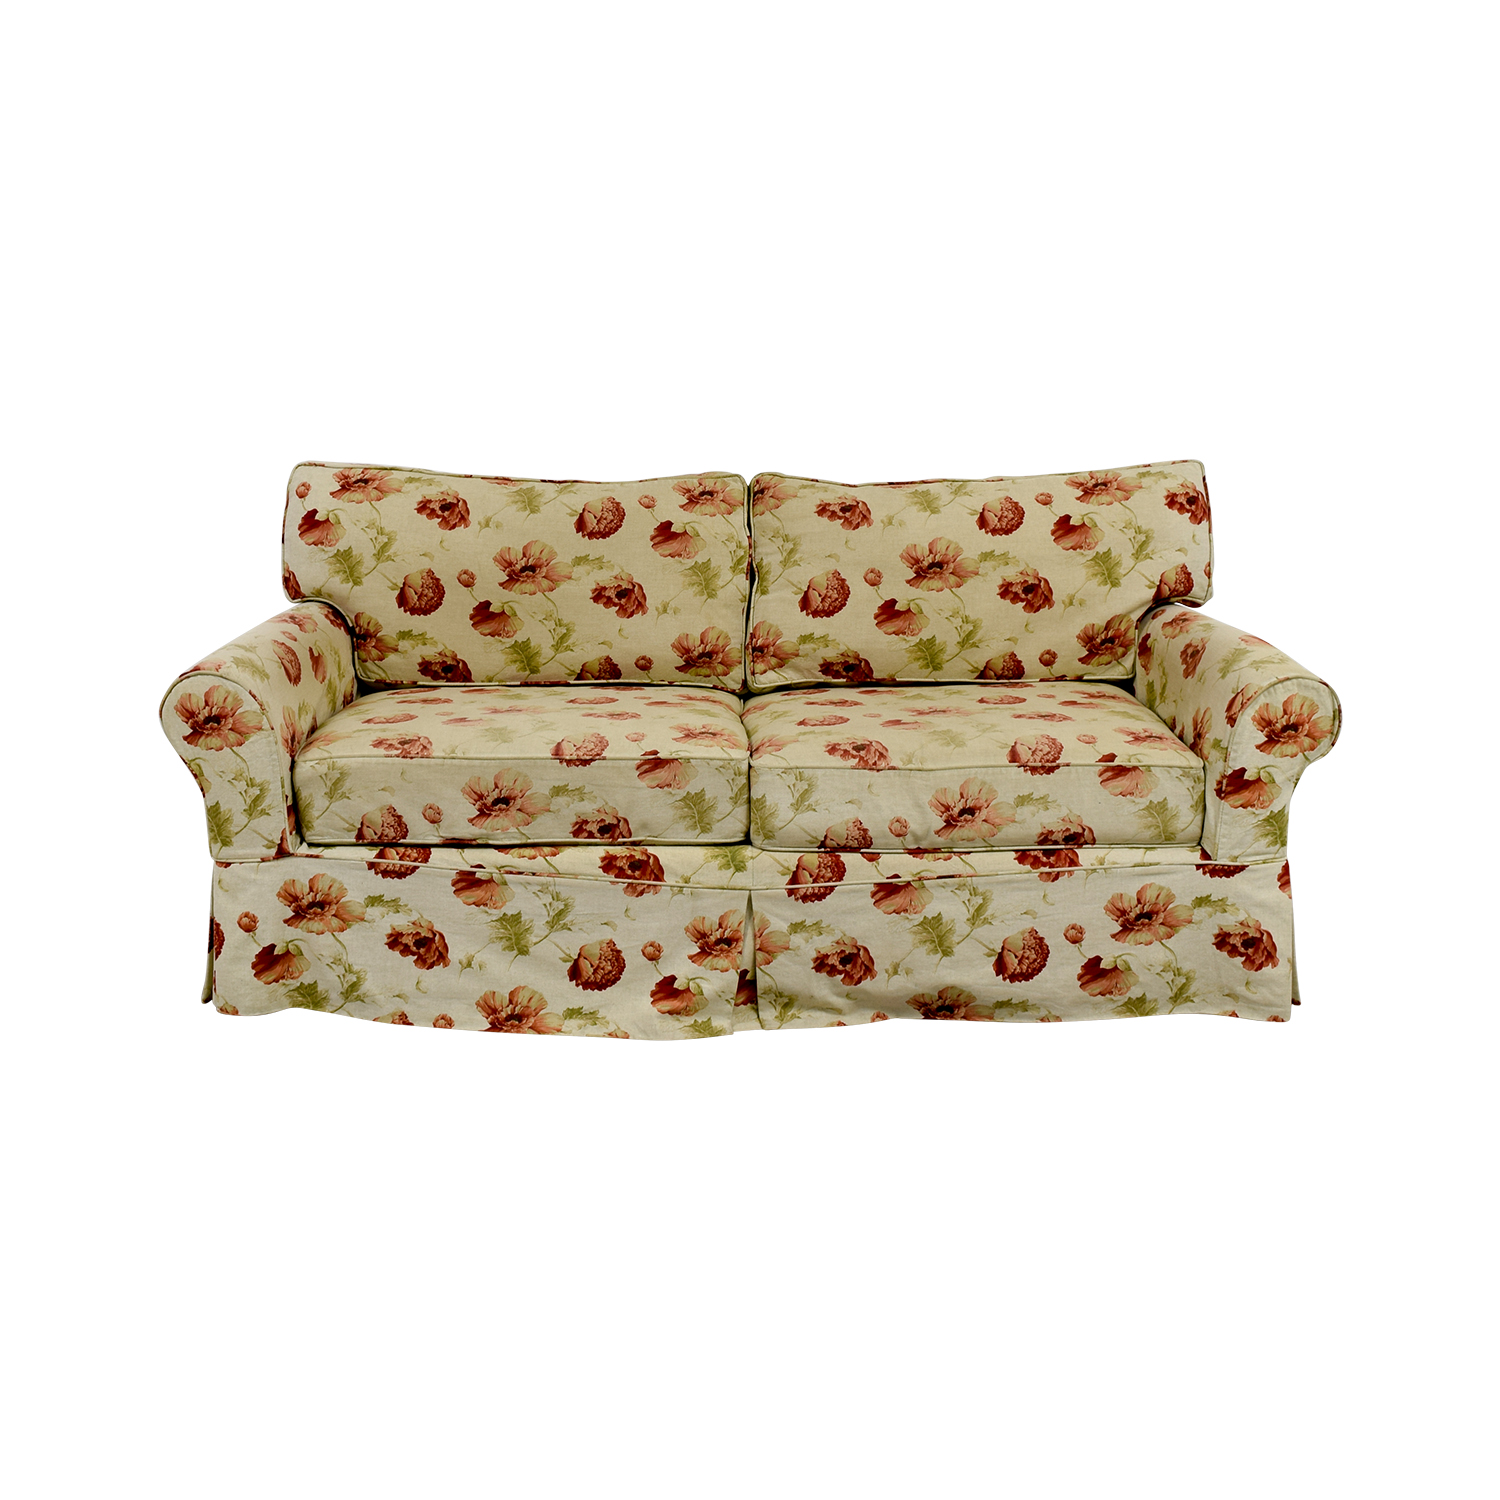 buy Crate & Barrel Slip Covered Floral Sofa Crate & Barrel